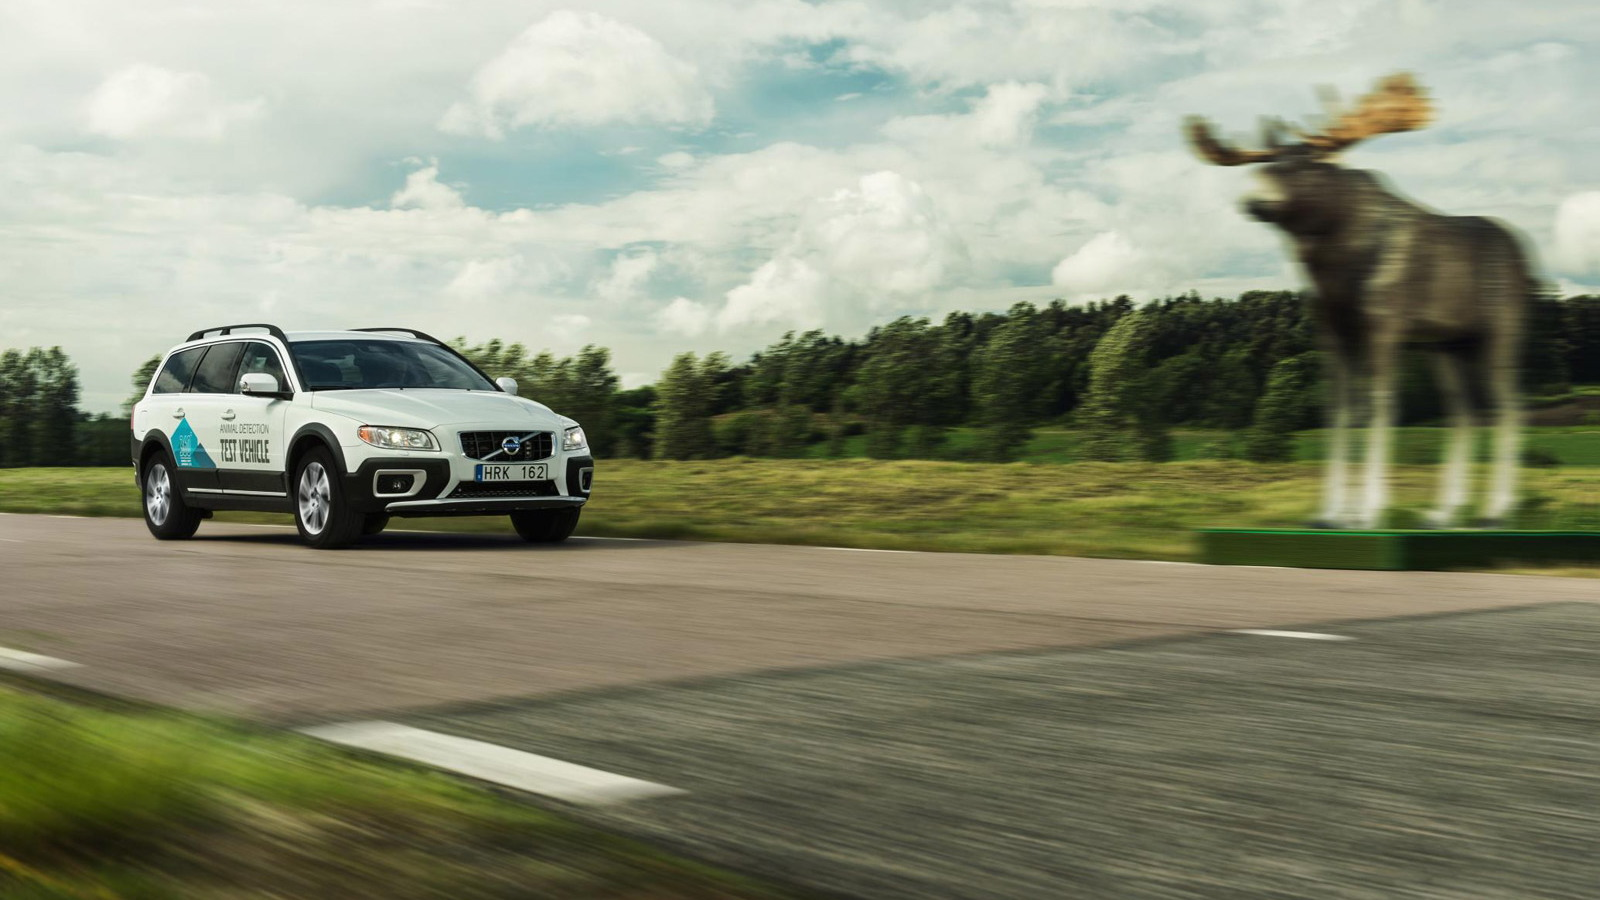 Safety technology planned for 2016 Volvo XC90